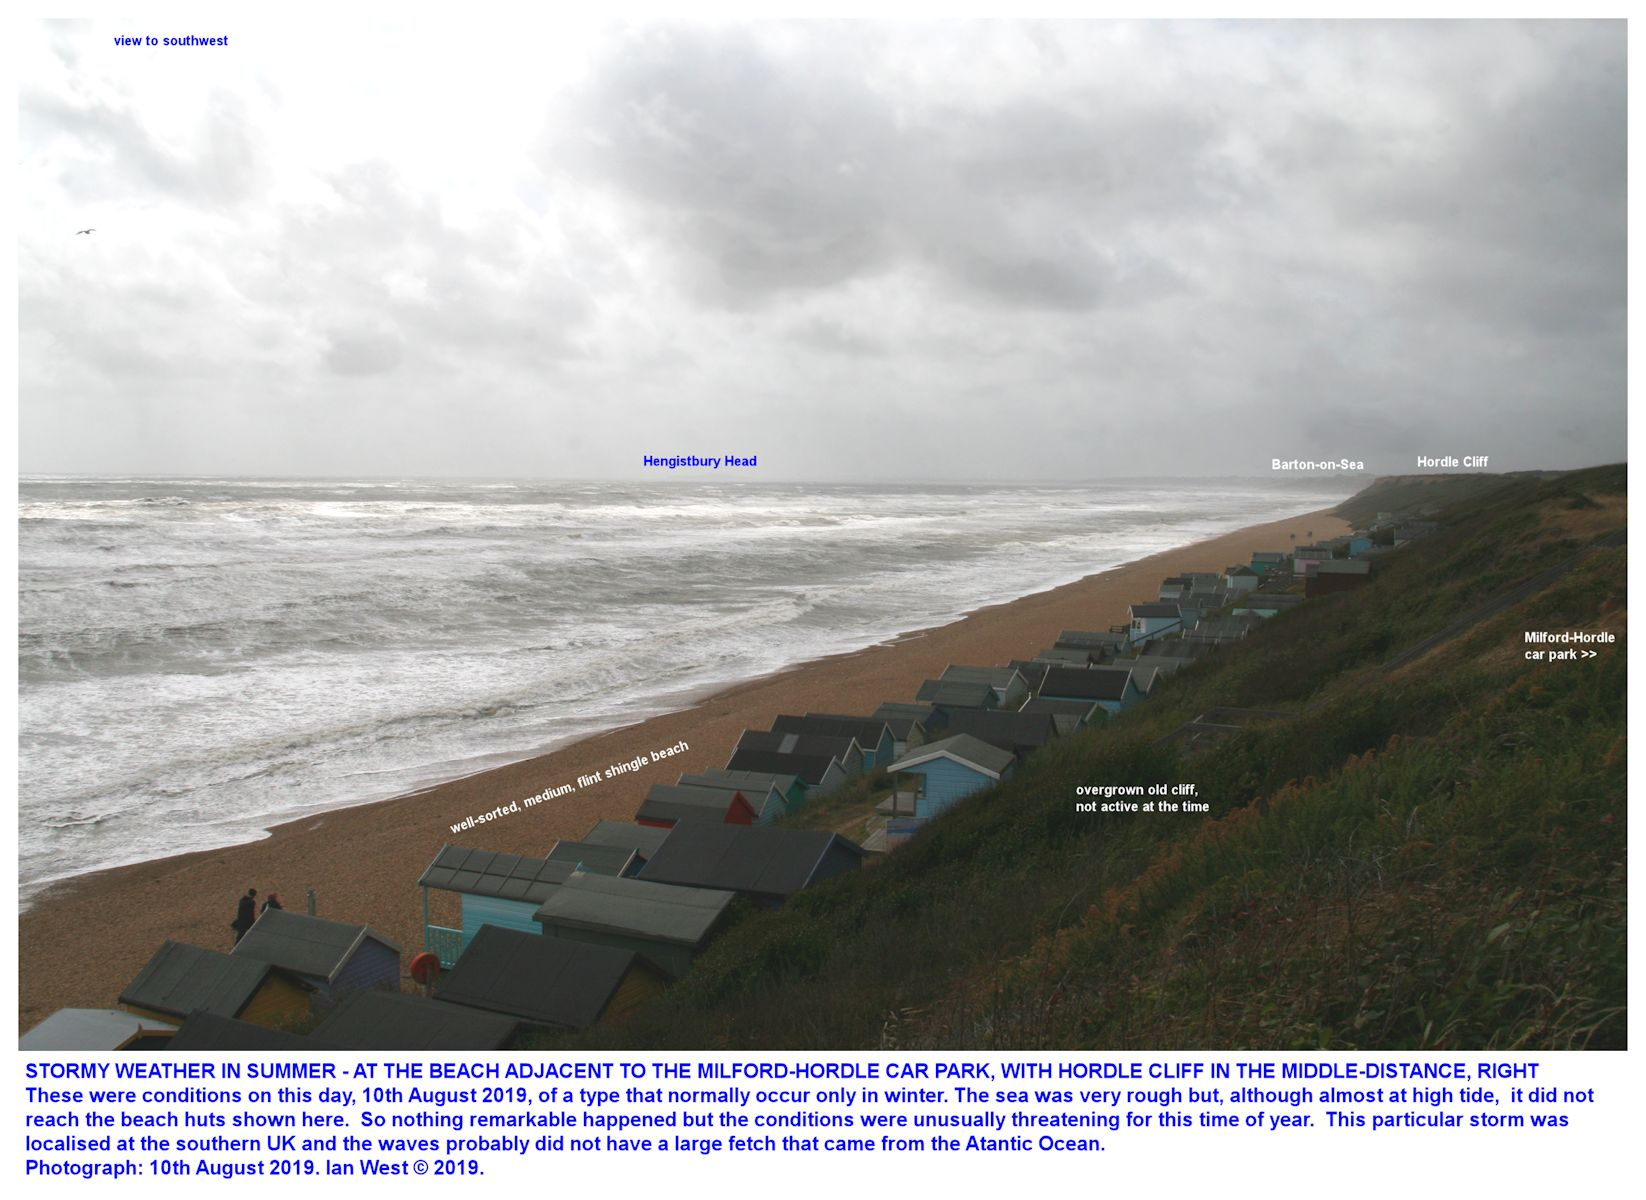 Unusually stormy weather in summer, at the Milford-Hordle car park and beach hut area, 10th August 2019